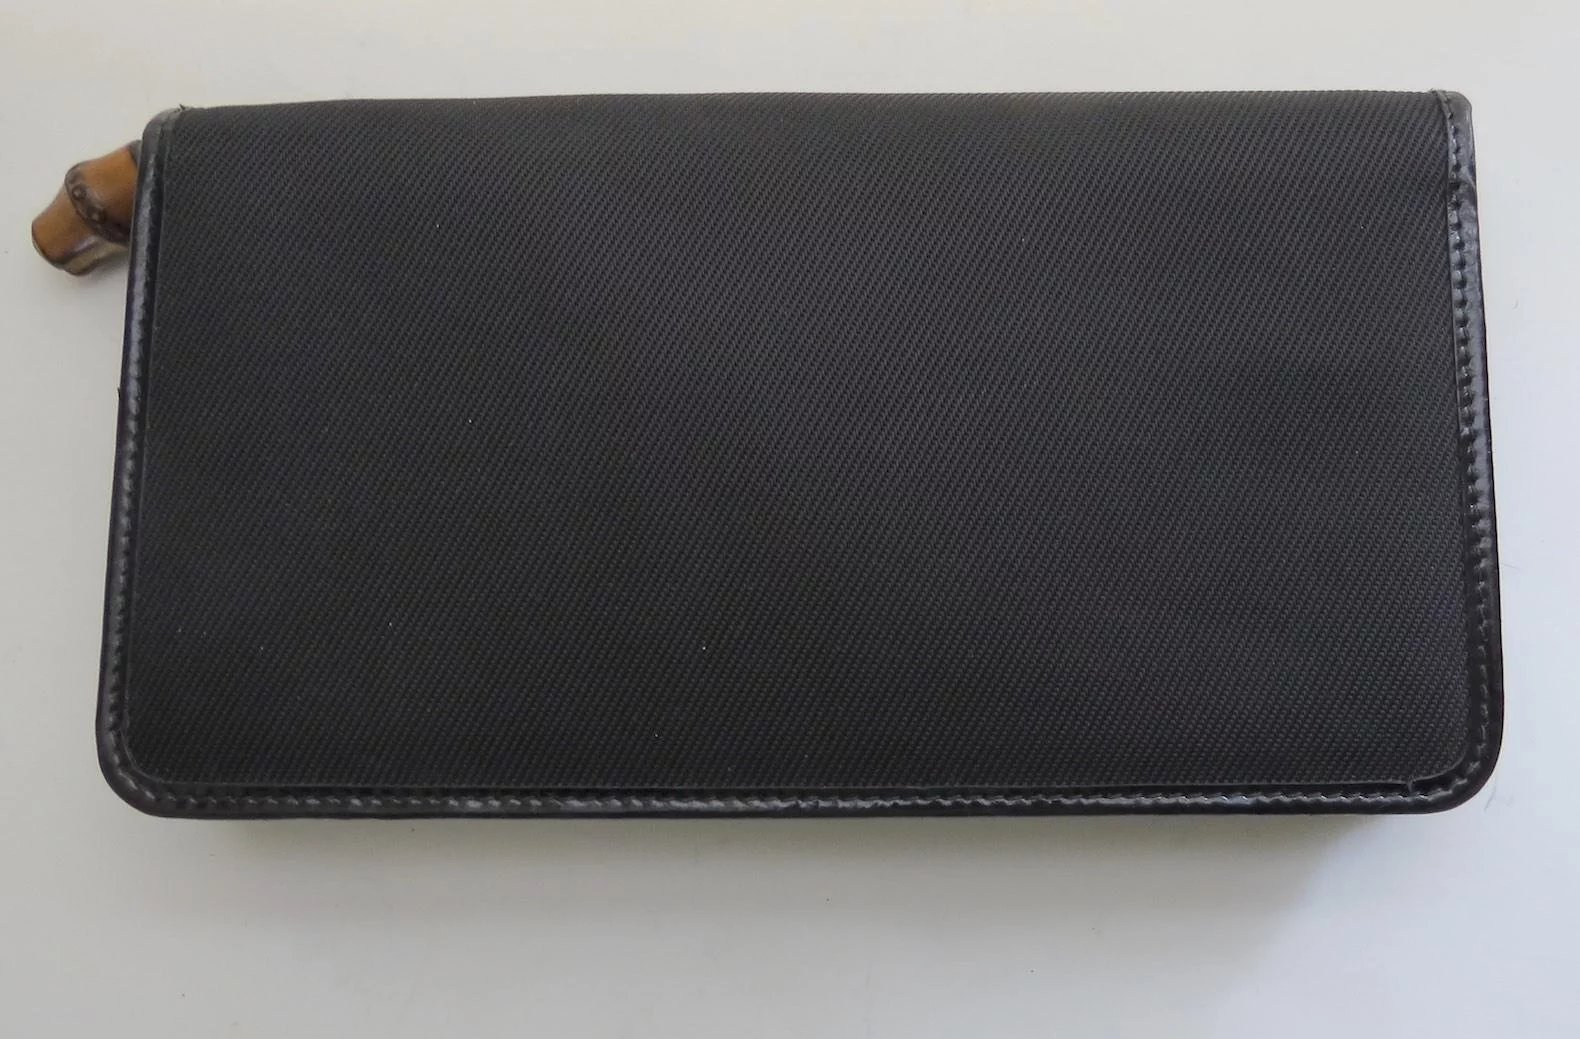 fd7a2bfc5 Vintage Gucci Wallet Credit Card Polished Leather Canvas Bamboo. Click to  expand